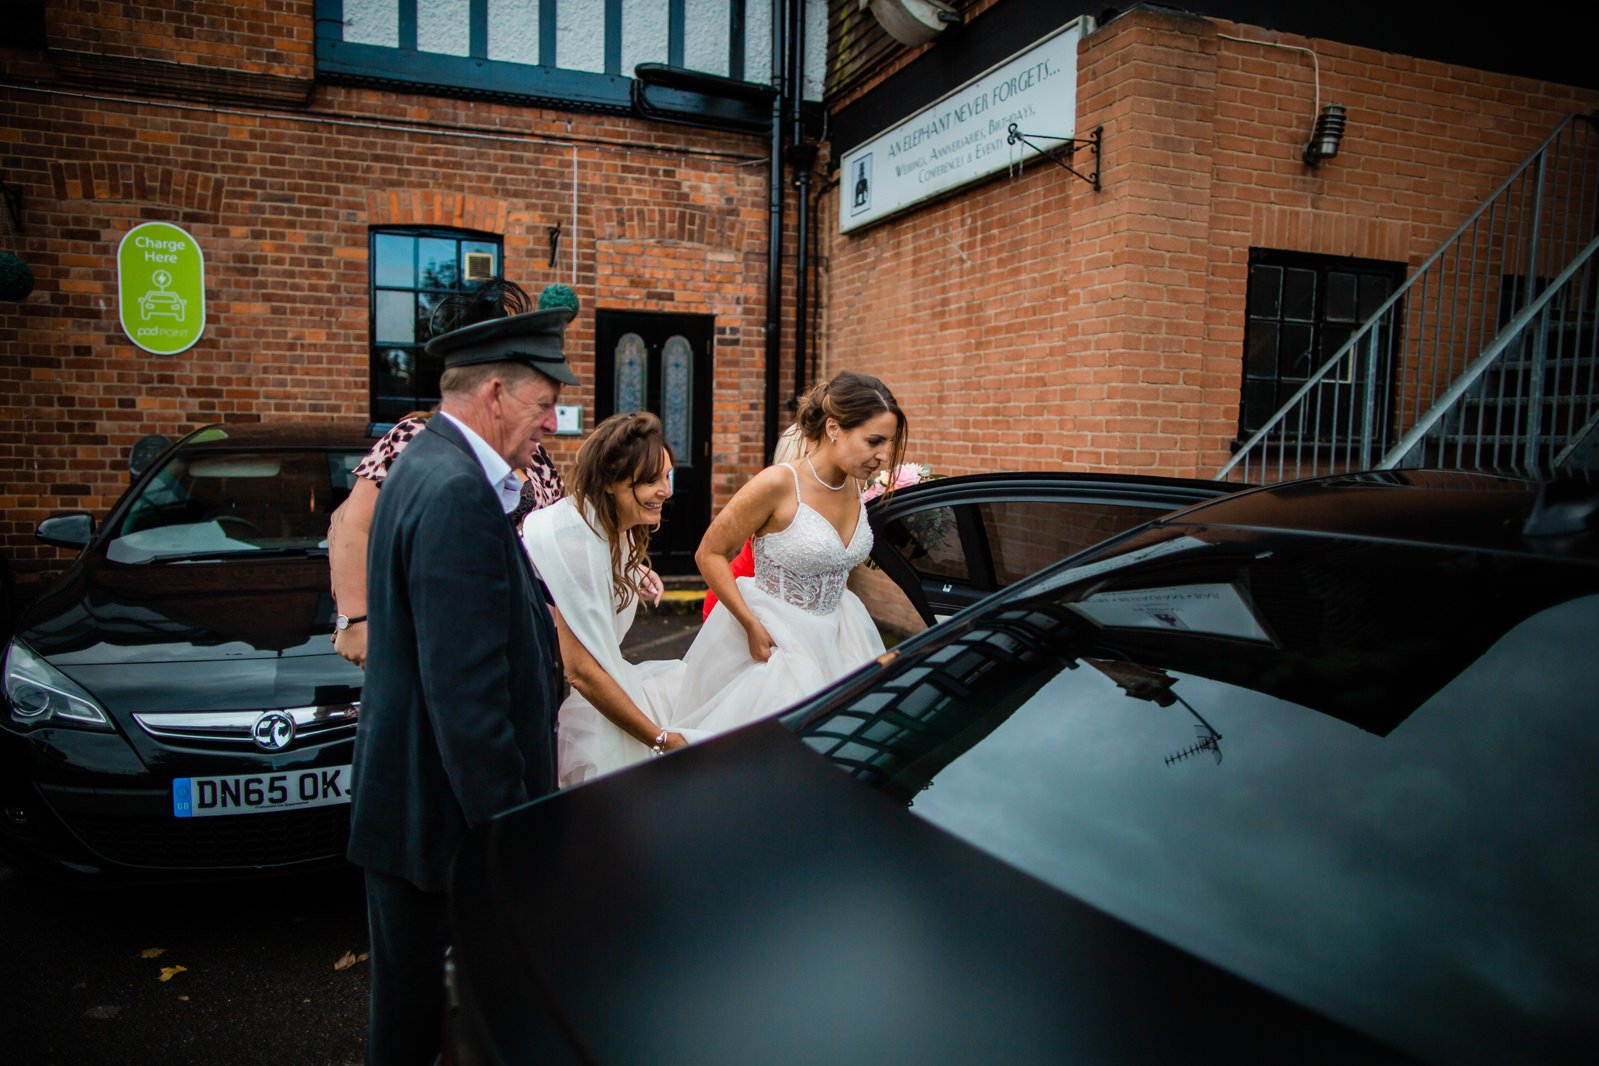 The Elephant Pangbourne Wedding - Stunning Kayleigh & Shane 29